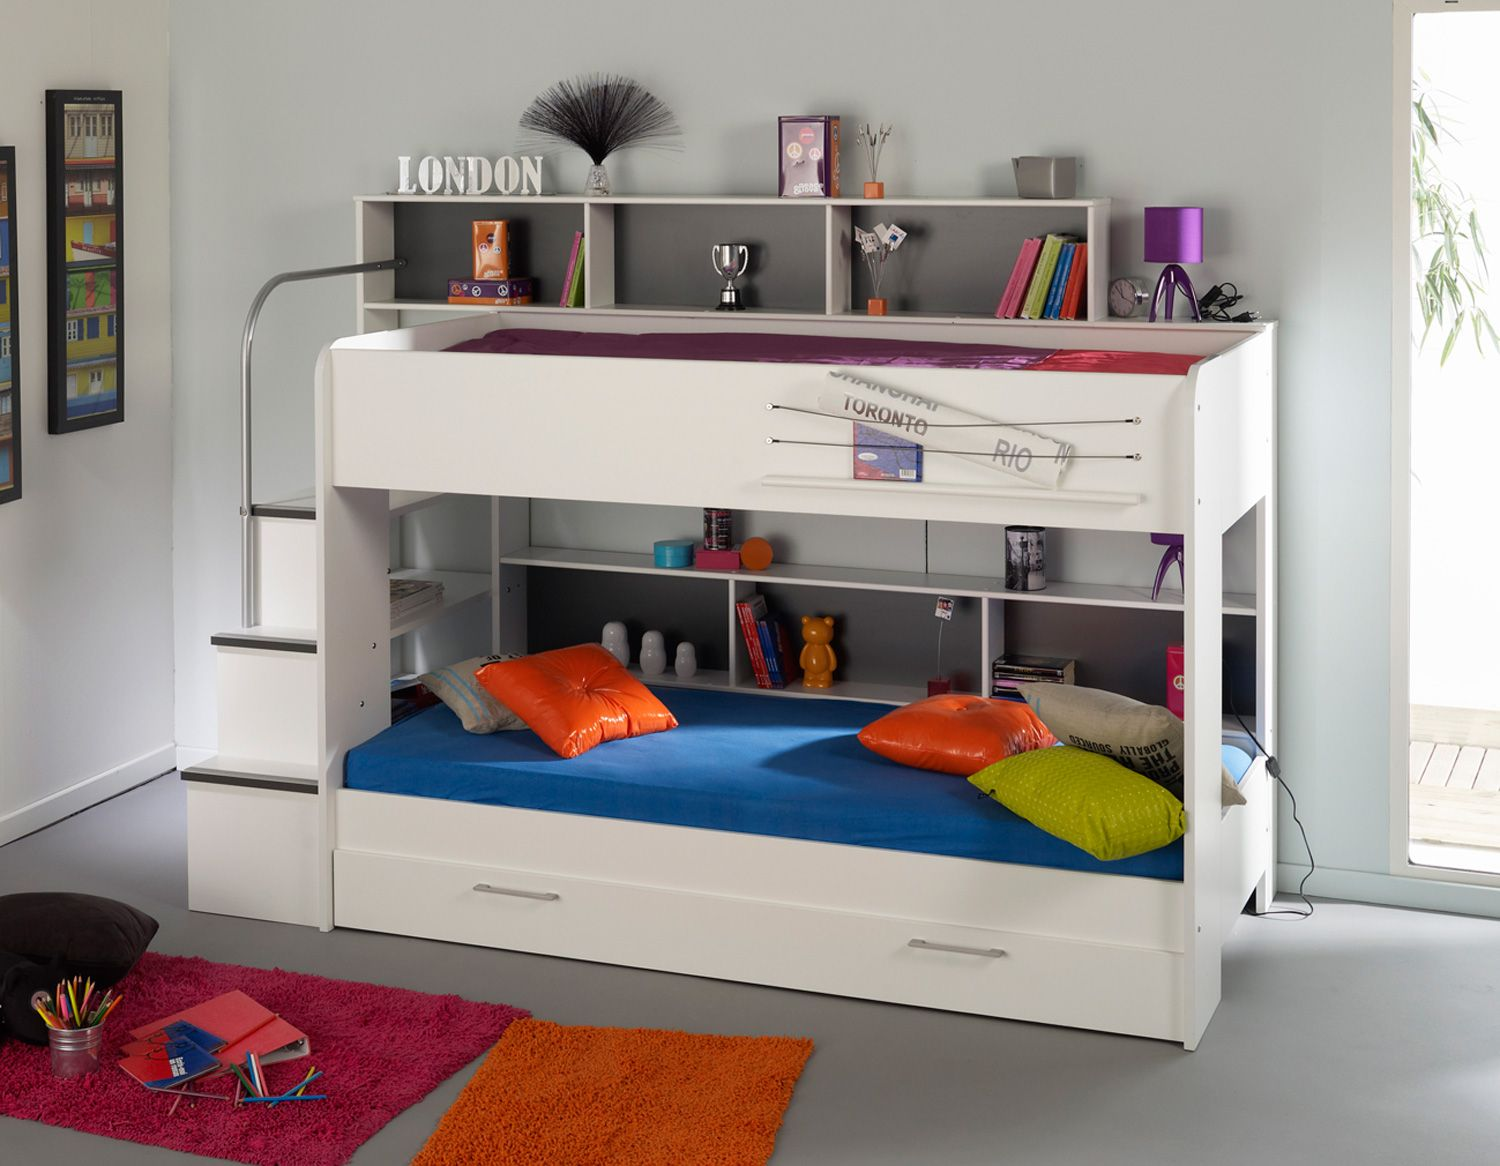 Bunk Bed Ideas For Small Rooms 30 Space Saving Beds For Small Rooms Bunk Bed Bunk Bed